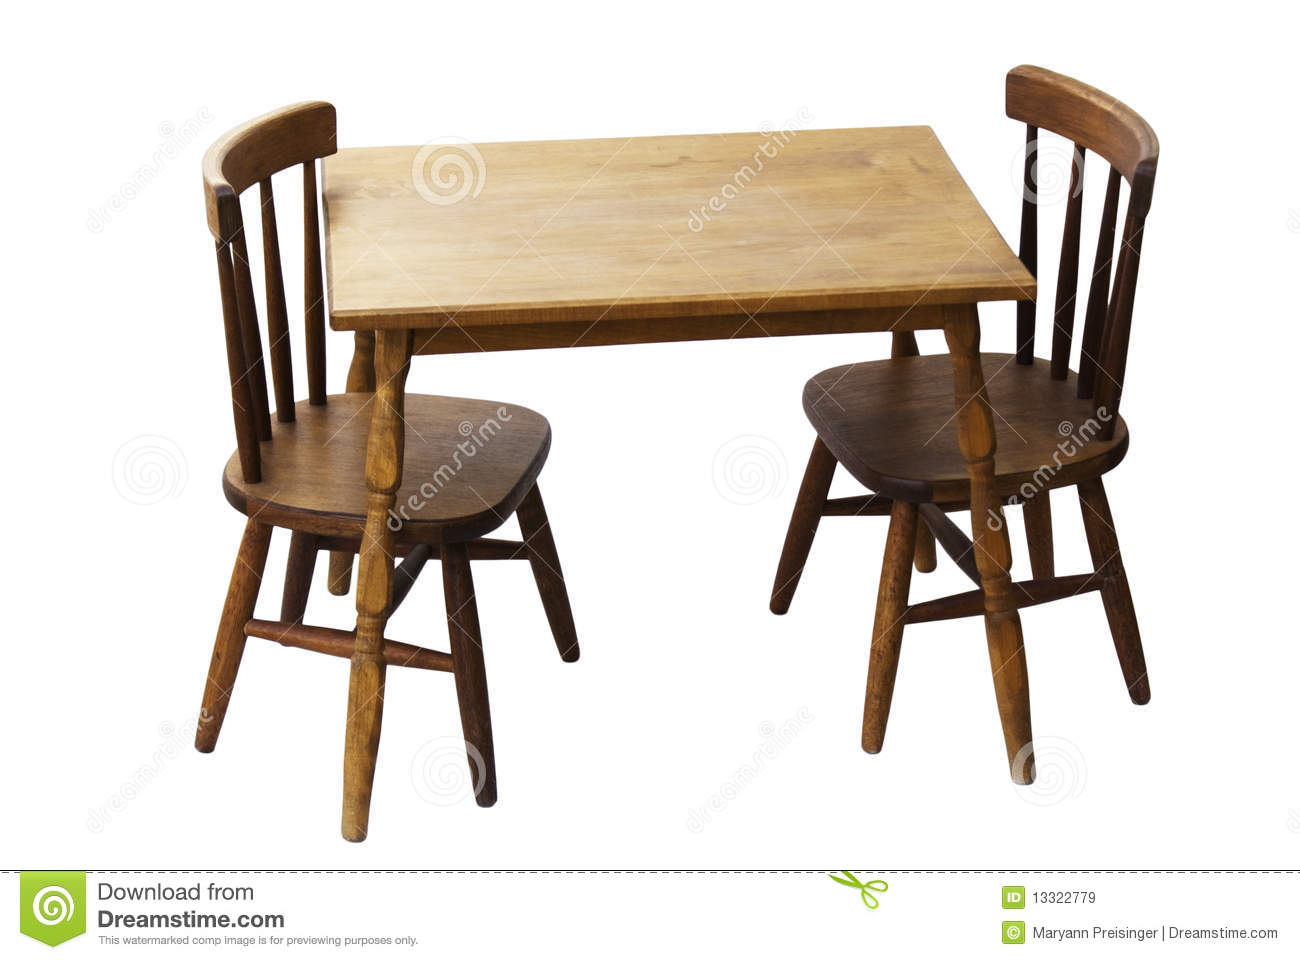 Royalty Free Stock Photo  Download Children s Child Wood Table And Chairs. Children s Child Wood Table And Chairs Isolated Royalty Free Stock